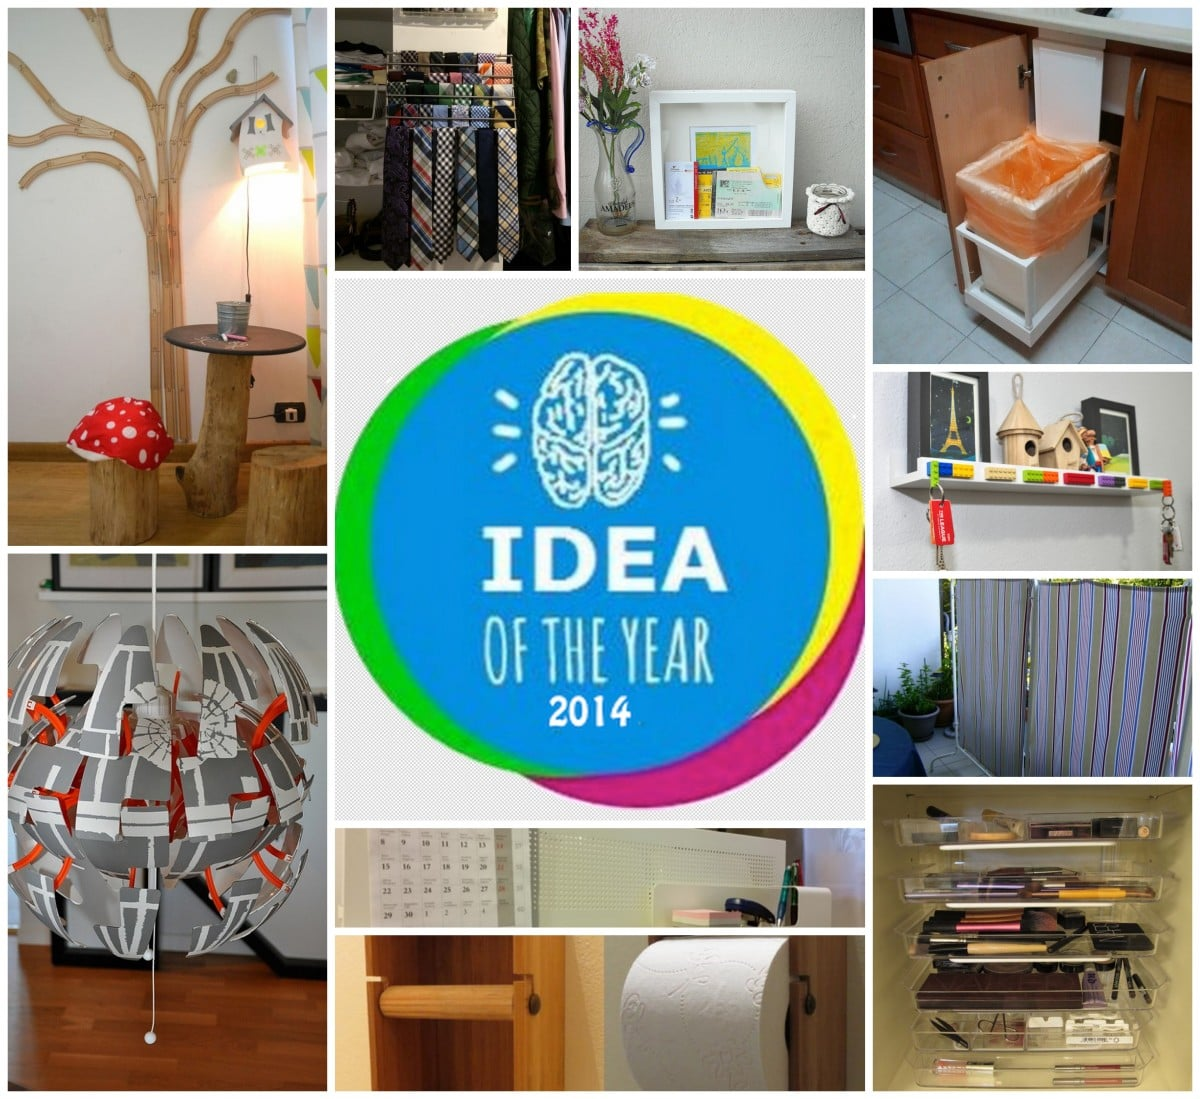 Ikea Idea Of The Year 2015 Vote For The Best